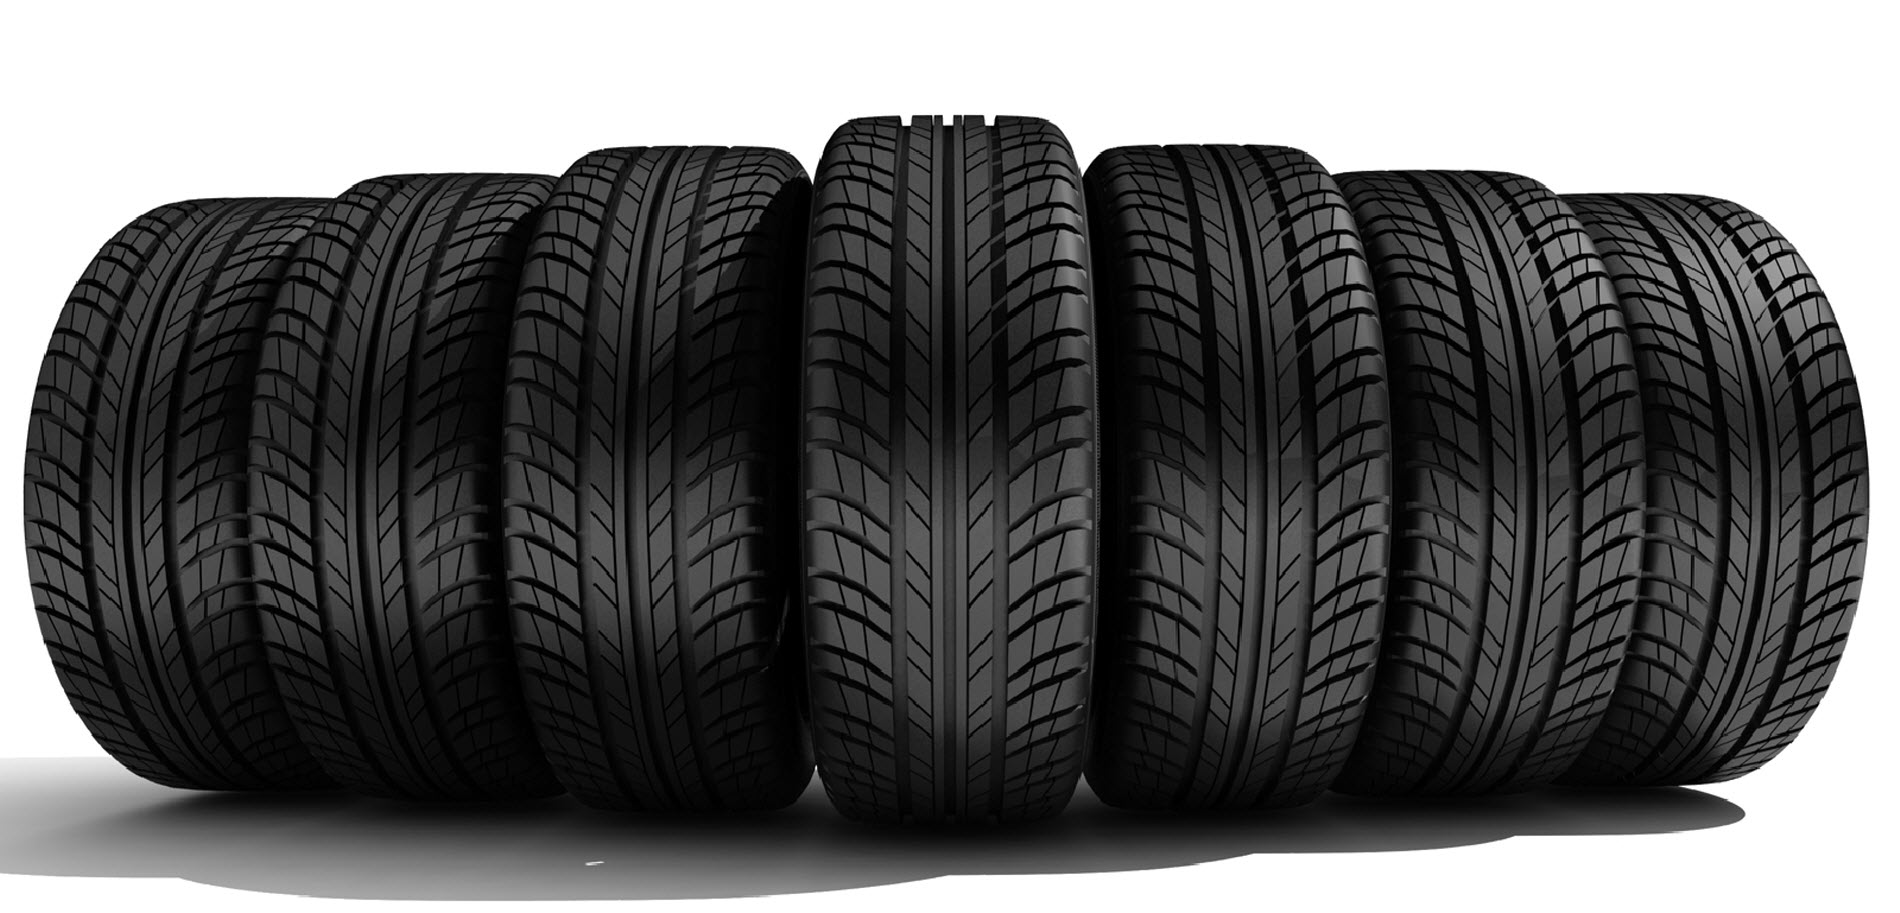 Michelin tyres price list in india features specs pics warranty reviews for car bike